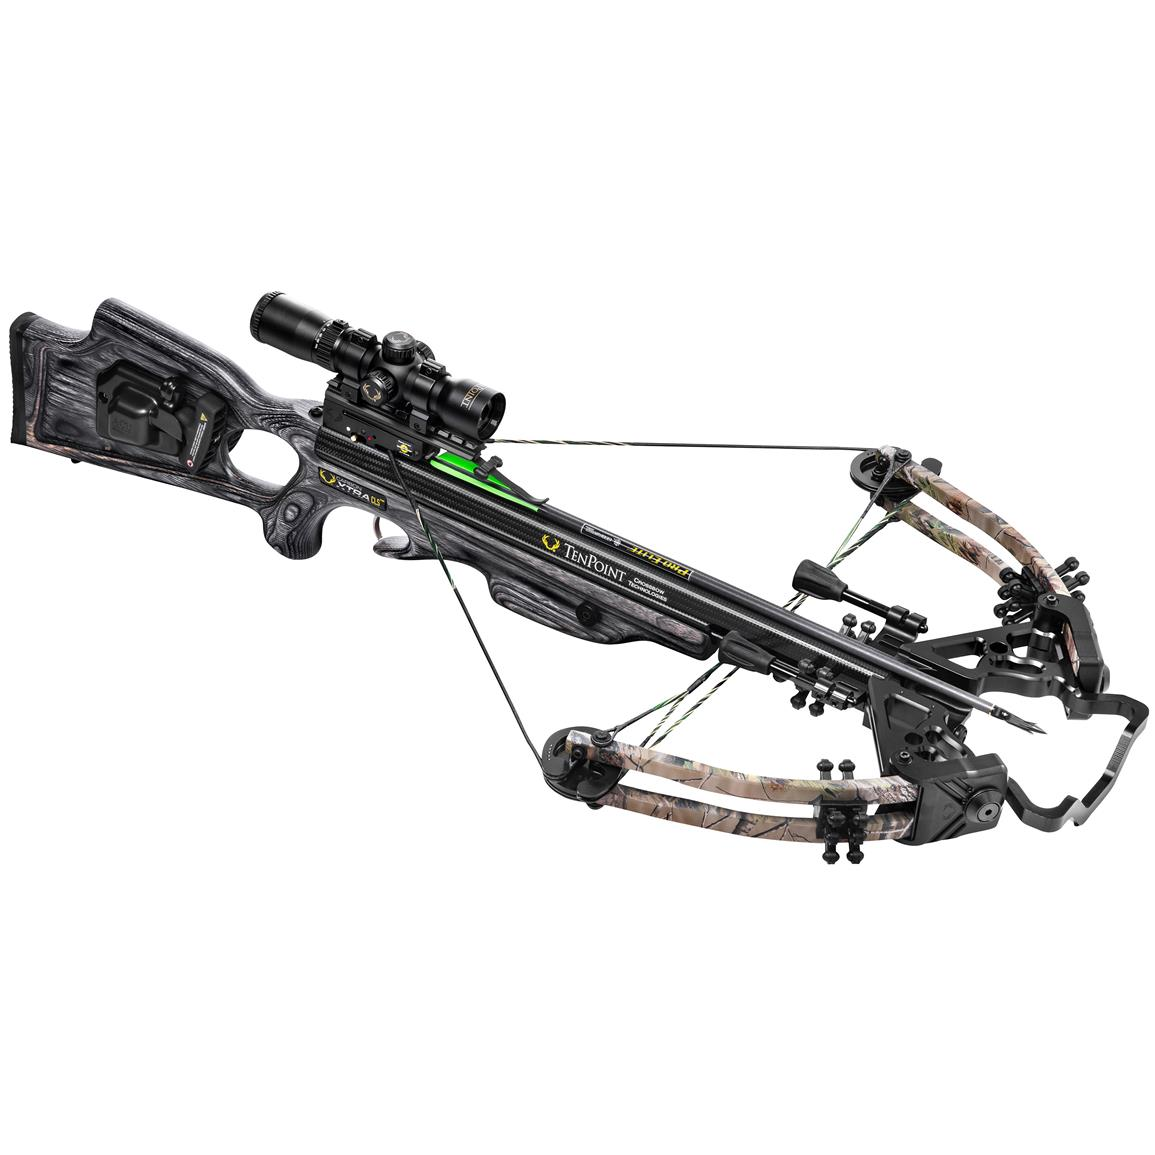 TenPoint Carbon Xtra CLS Crossbow Package with ACUdraw 50